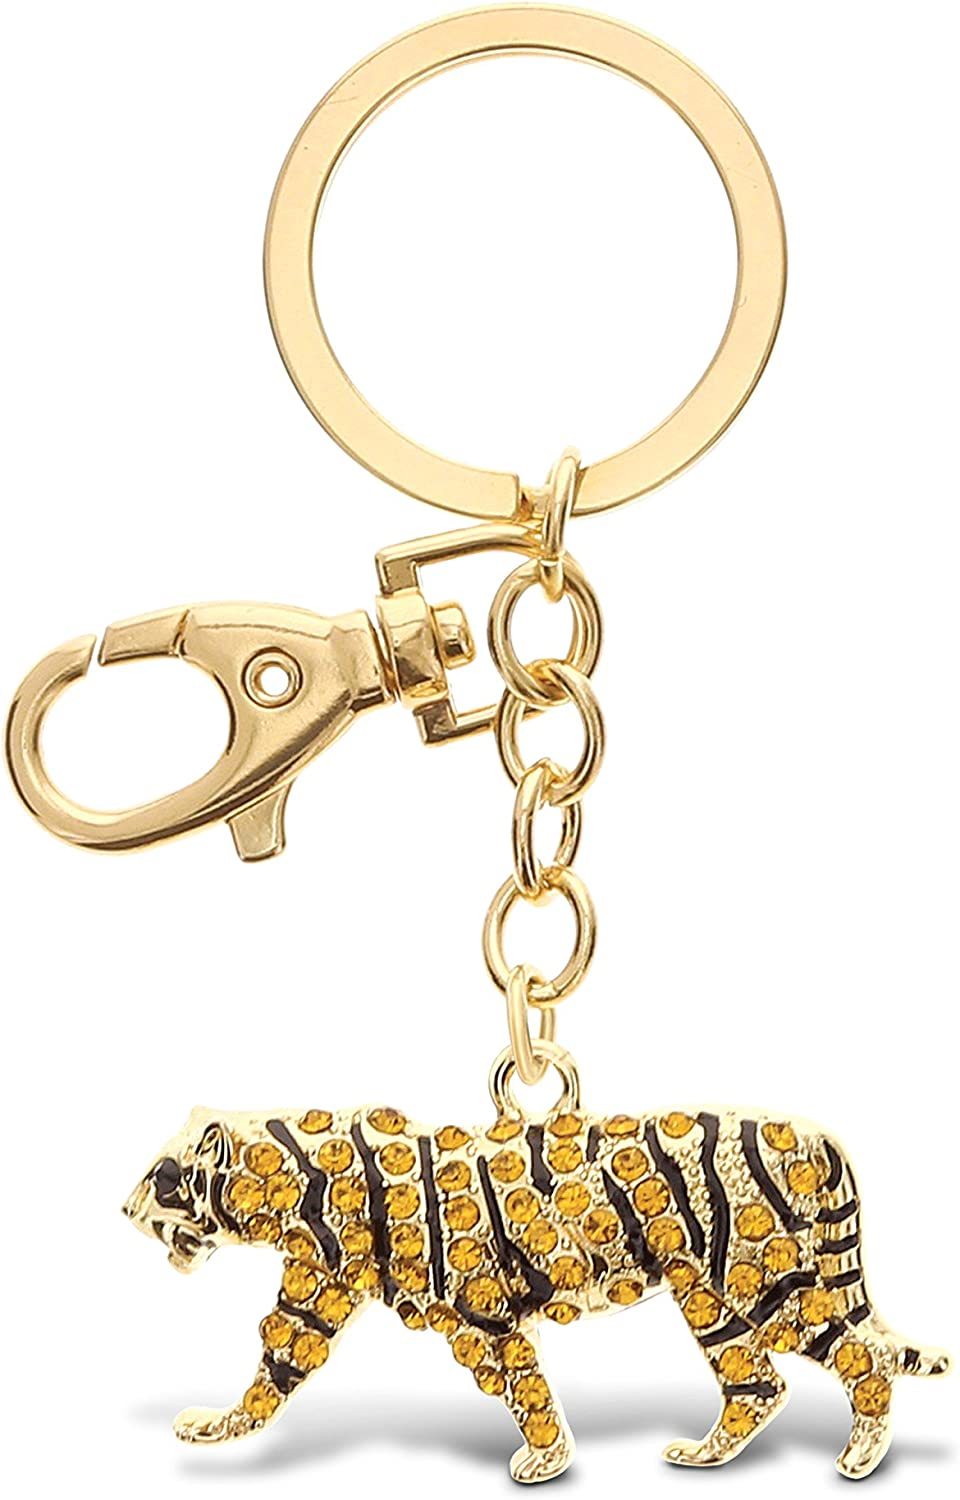 2pcs Charm Animal Women Bag Purse Pendant Key Chain Ring Keyring Metal Key Chain